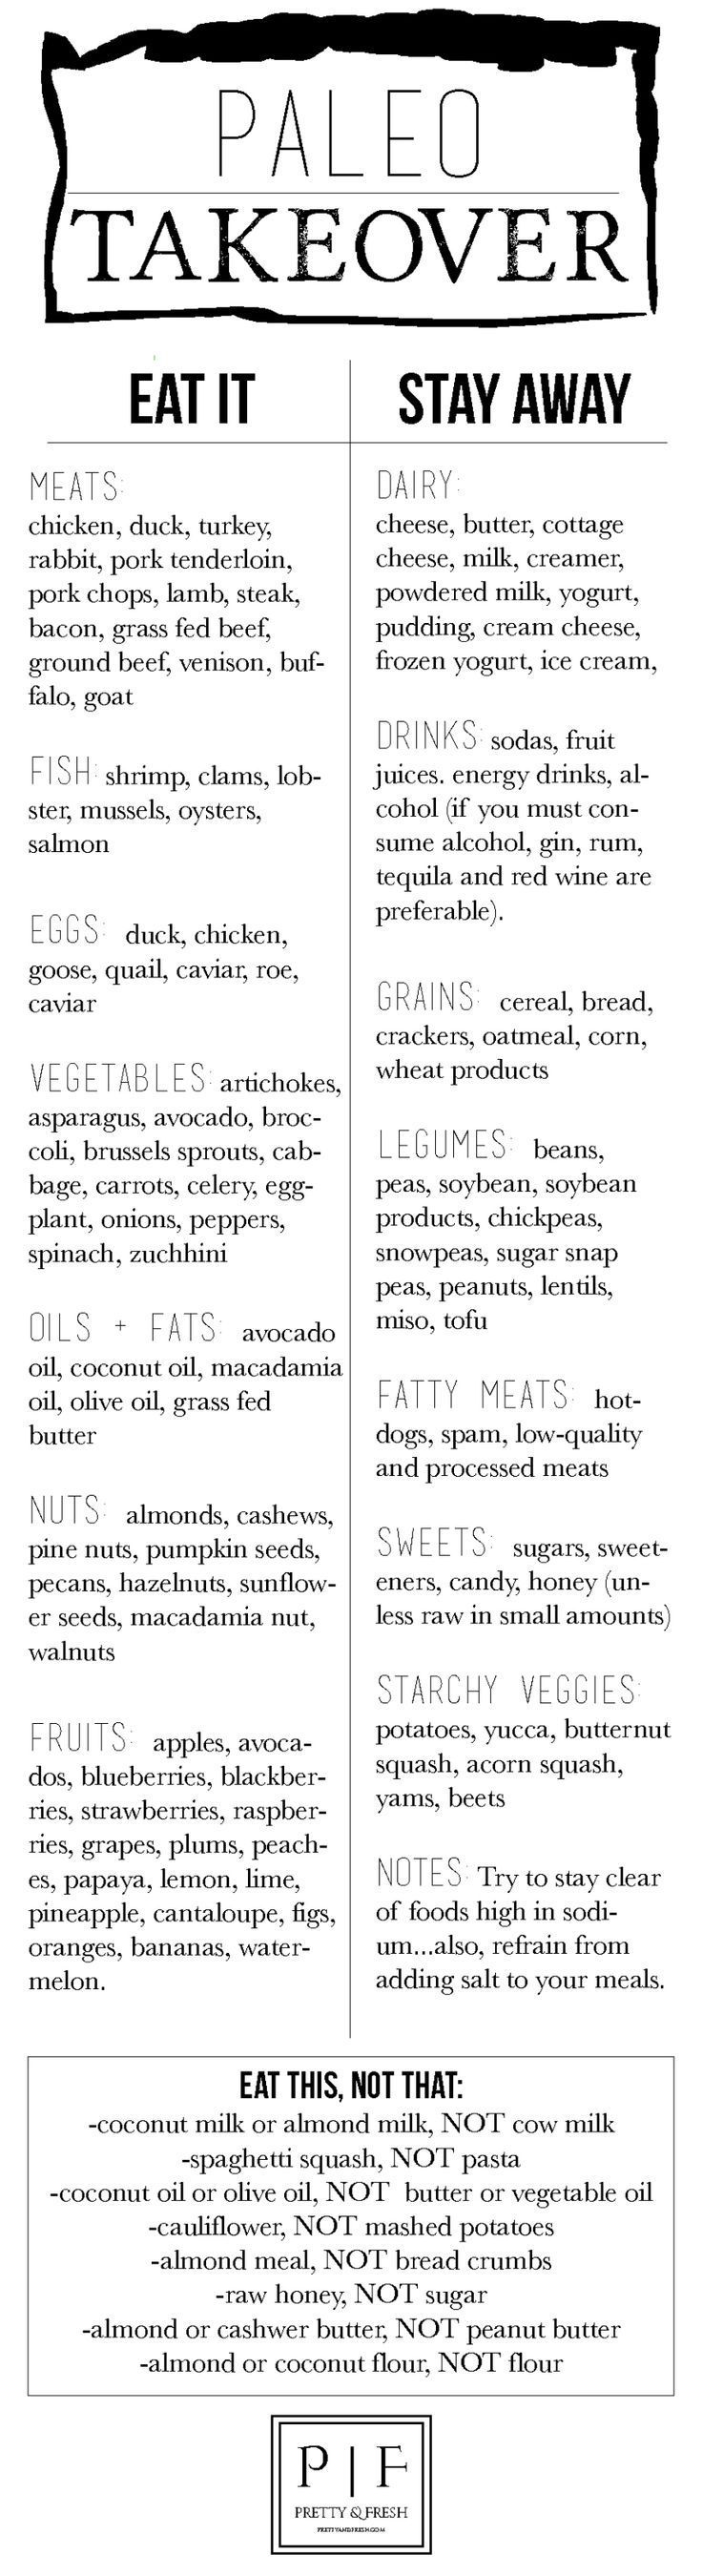 "Diabetic diet foods Paleo Takeover Infographic : Eat It, Stay Away Comments: ""I do not strictly adhere to a paleo diet, but these are nice guidelines."" ""Butternut squash and sweet potato are allowed"" ""Dairy is more of a gray area, and at any rate, grains should always be first on the NO pile"":"